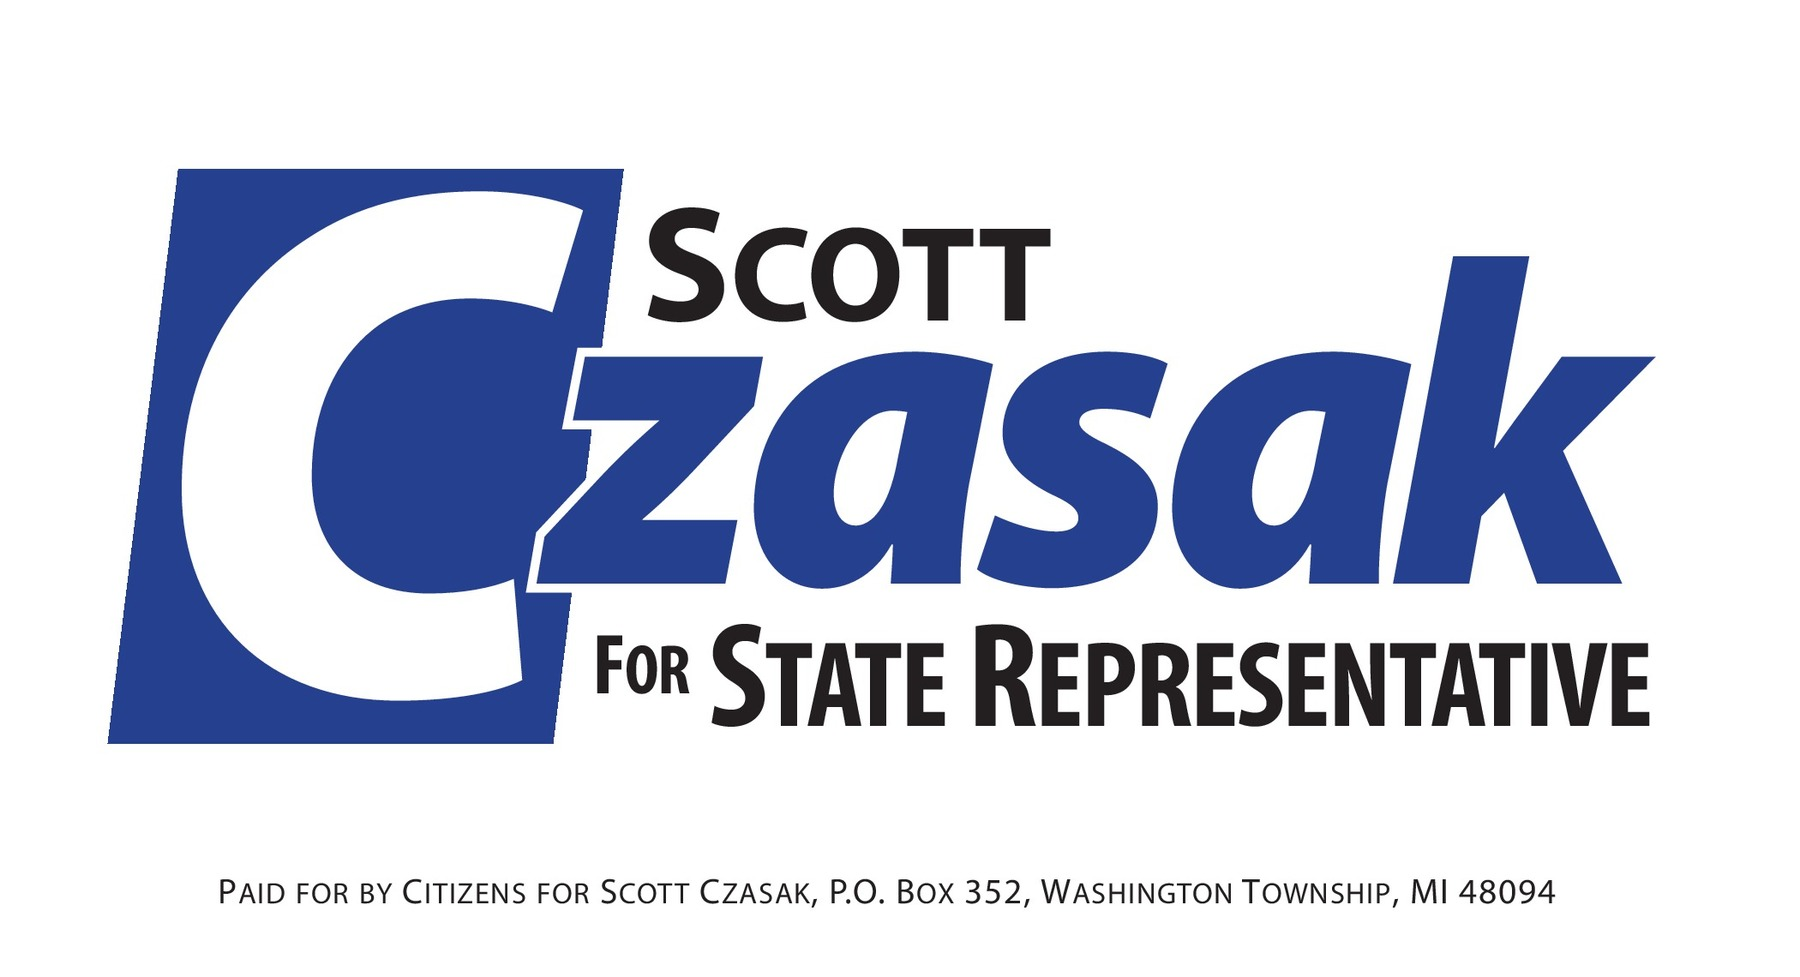 Scott Czasak for State Representative: Support Scott!